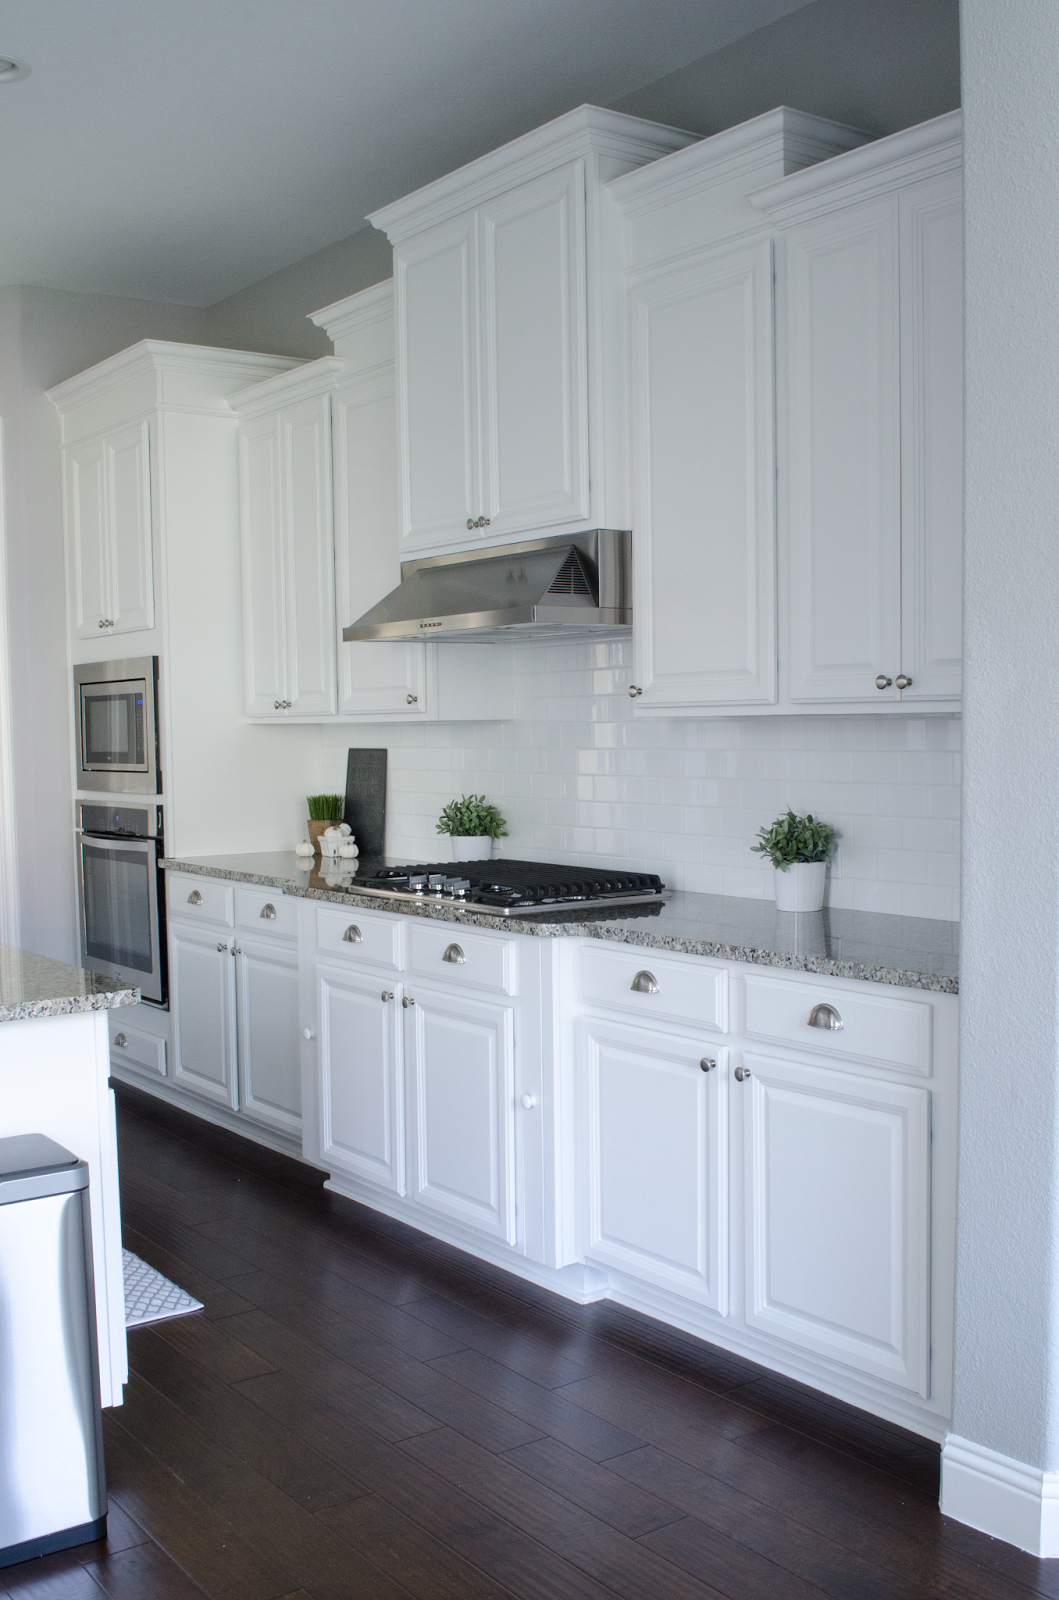 White kitchen cabinets kitchen love pinterest for Best countertops for white cabinets